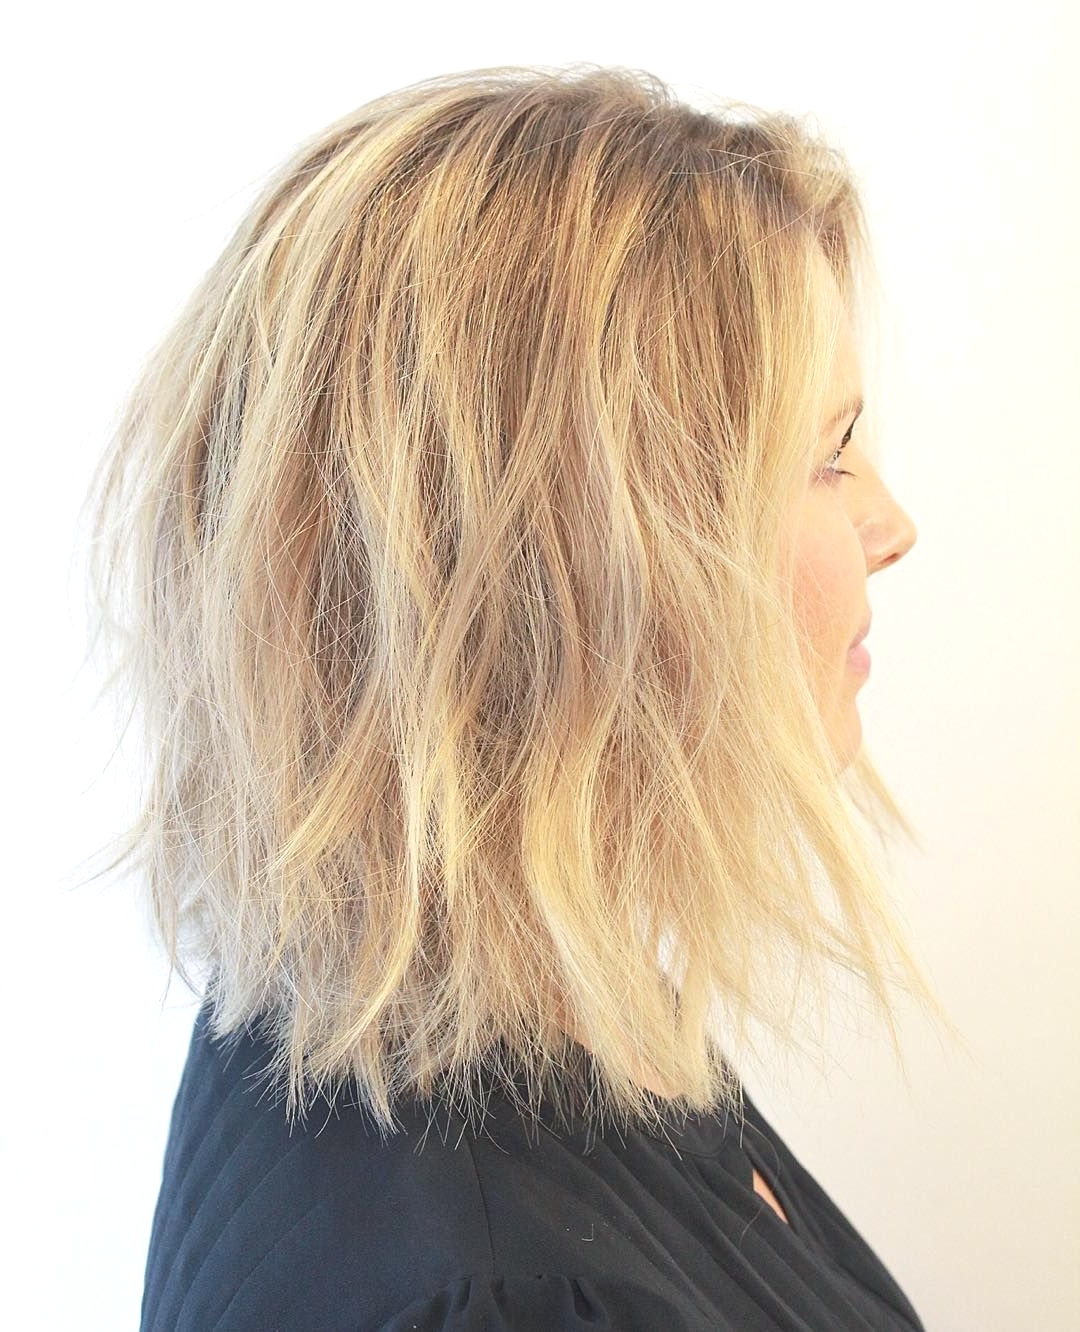 Hairstyles : Bed Head Hairstyle Marvellous Shake With Chunky Choppy In Famous Bedhead Layers For Long Hairstyles (View 18 of 20)